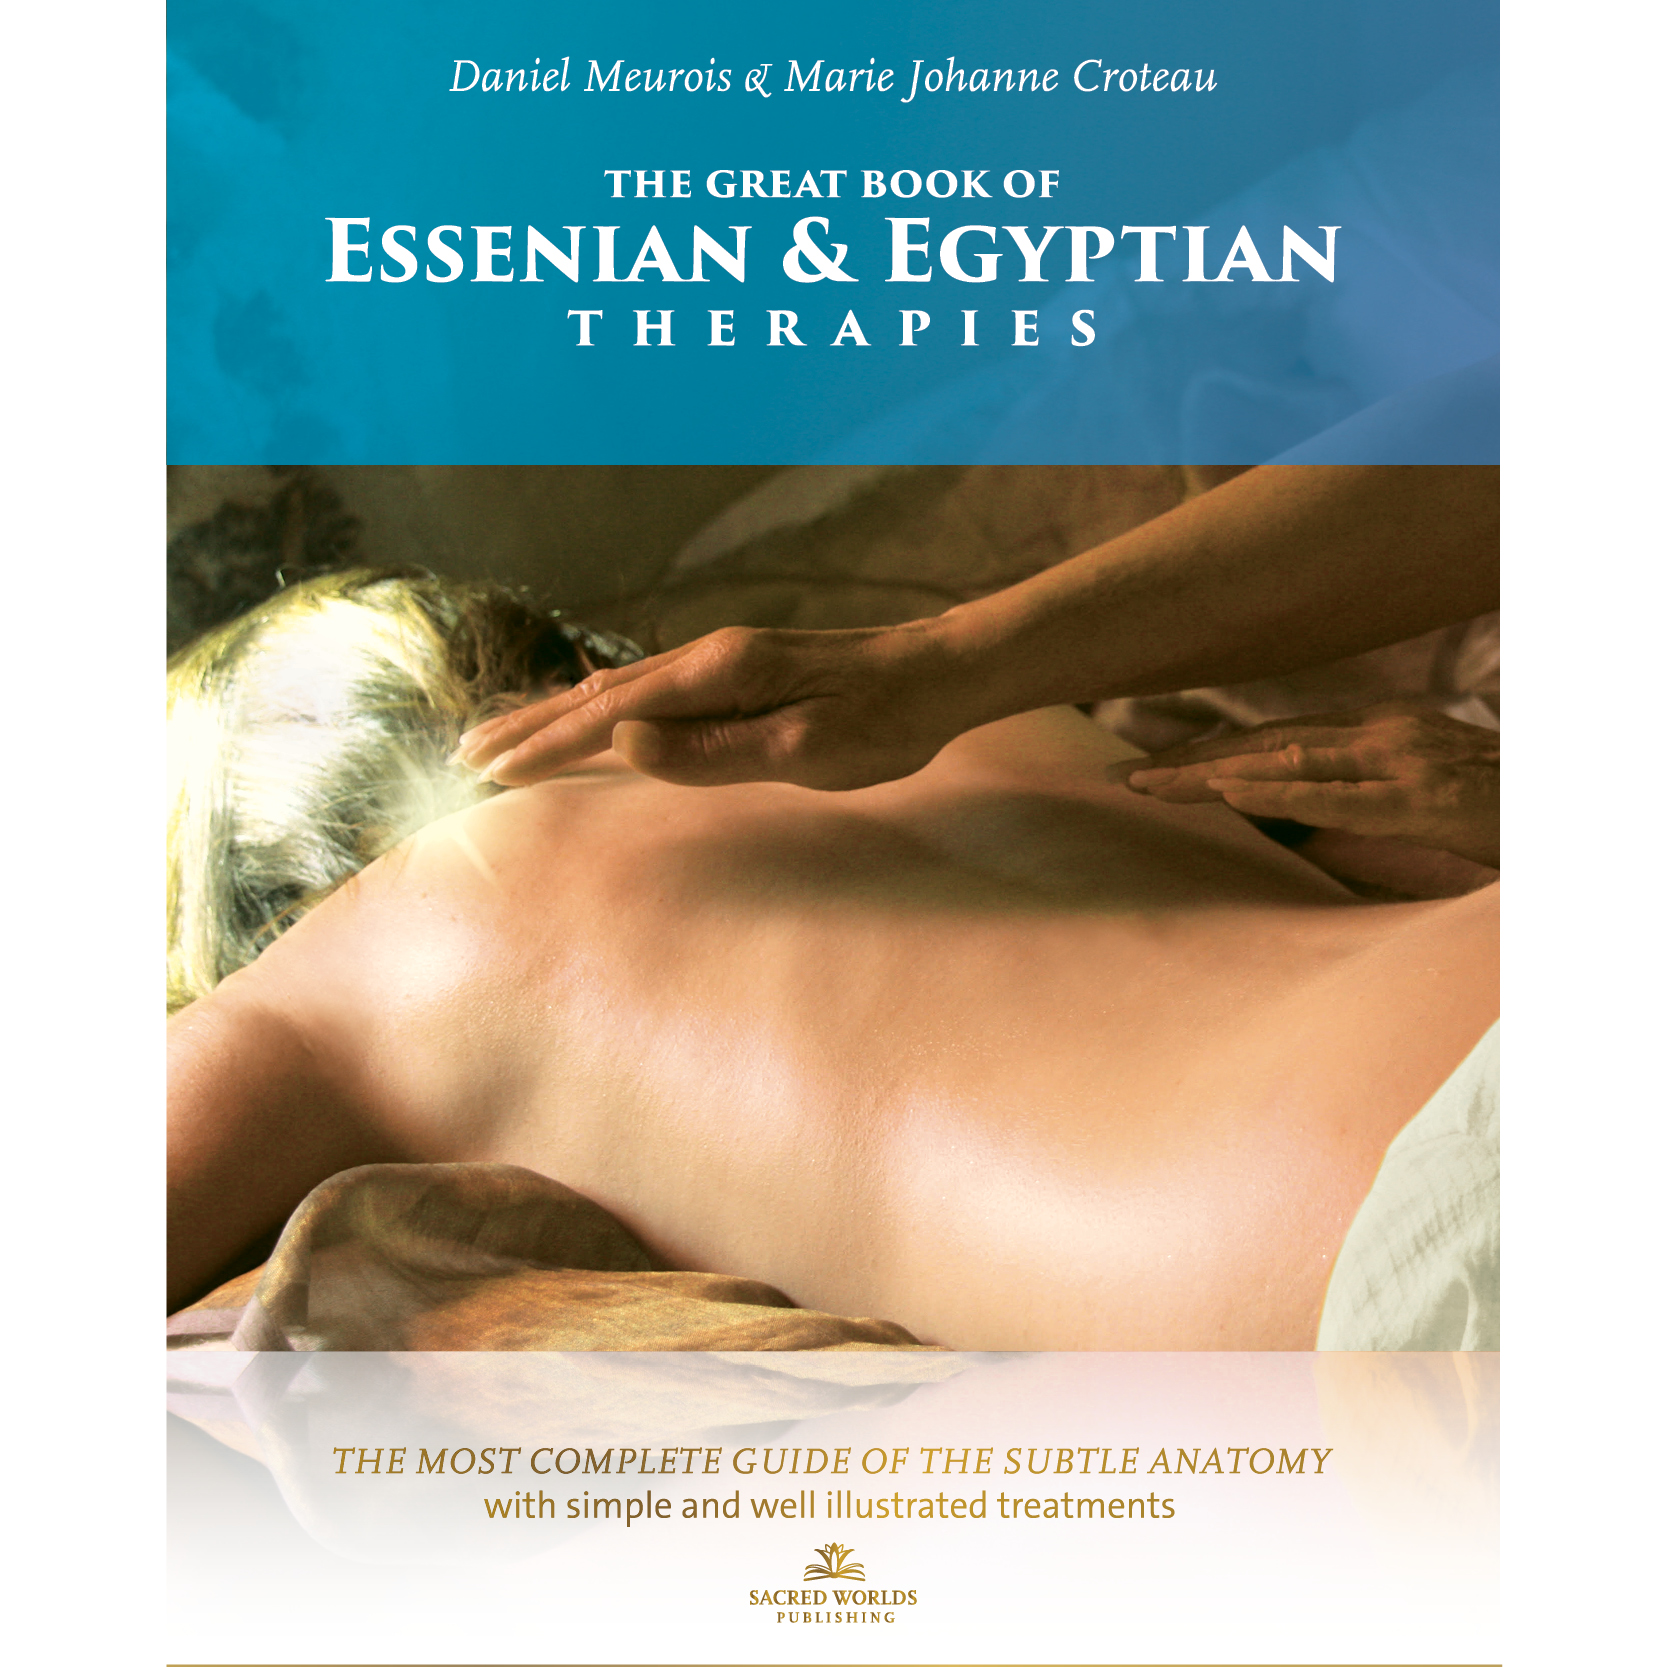 Great Book of Essenian and Egpytian Therapies